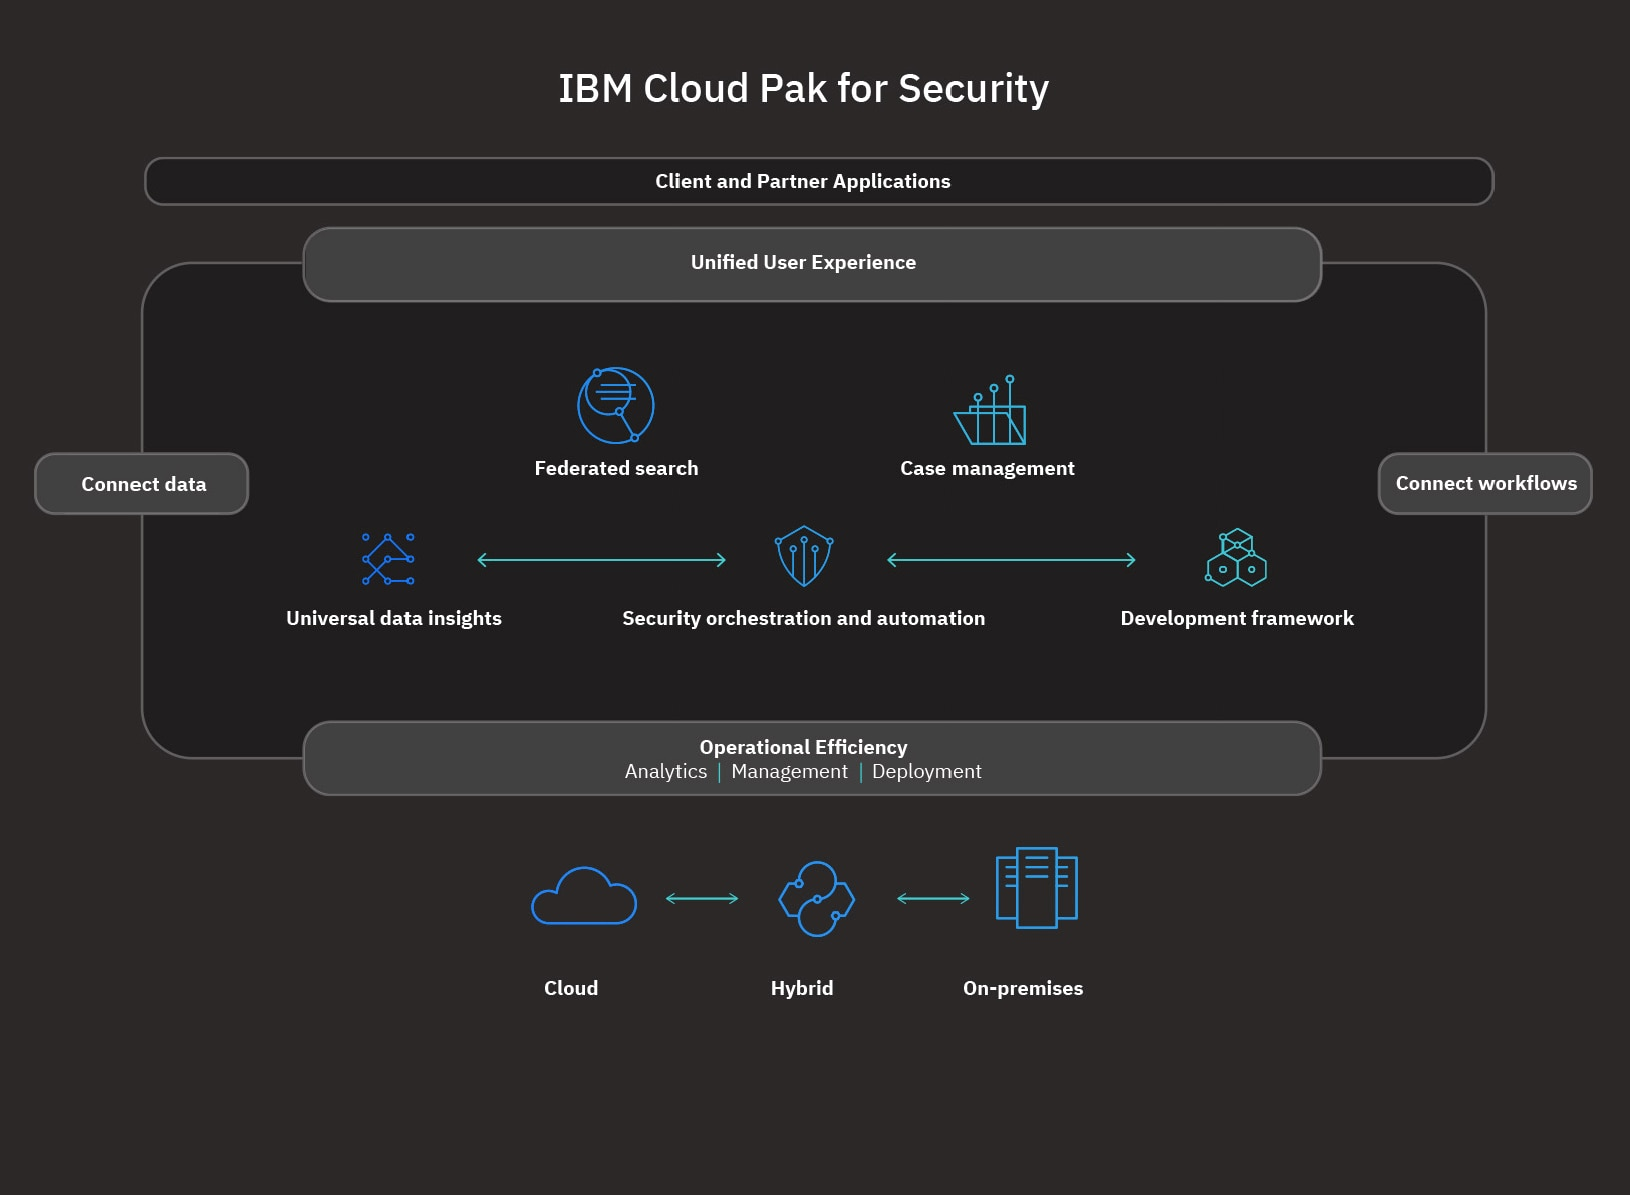 Description of how IBM Cloud Pak for Security works.